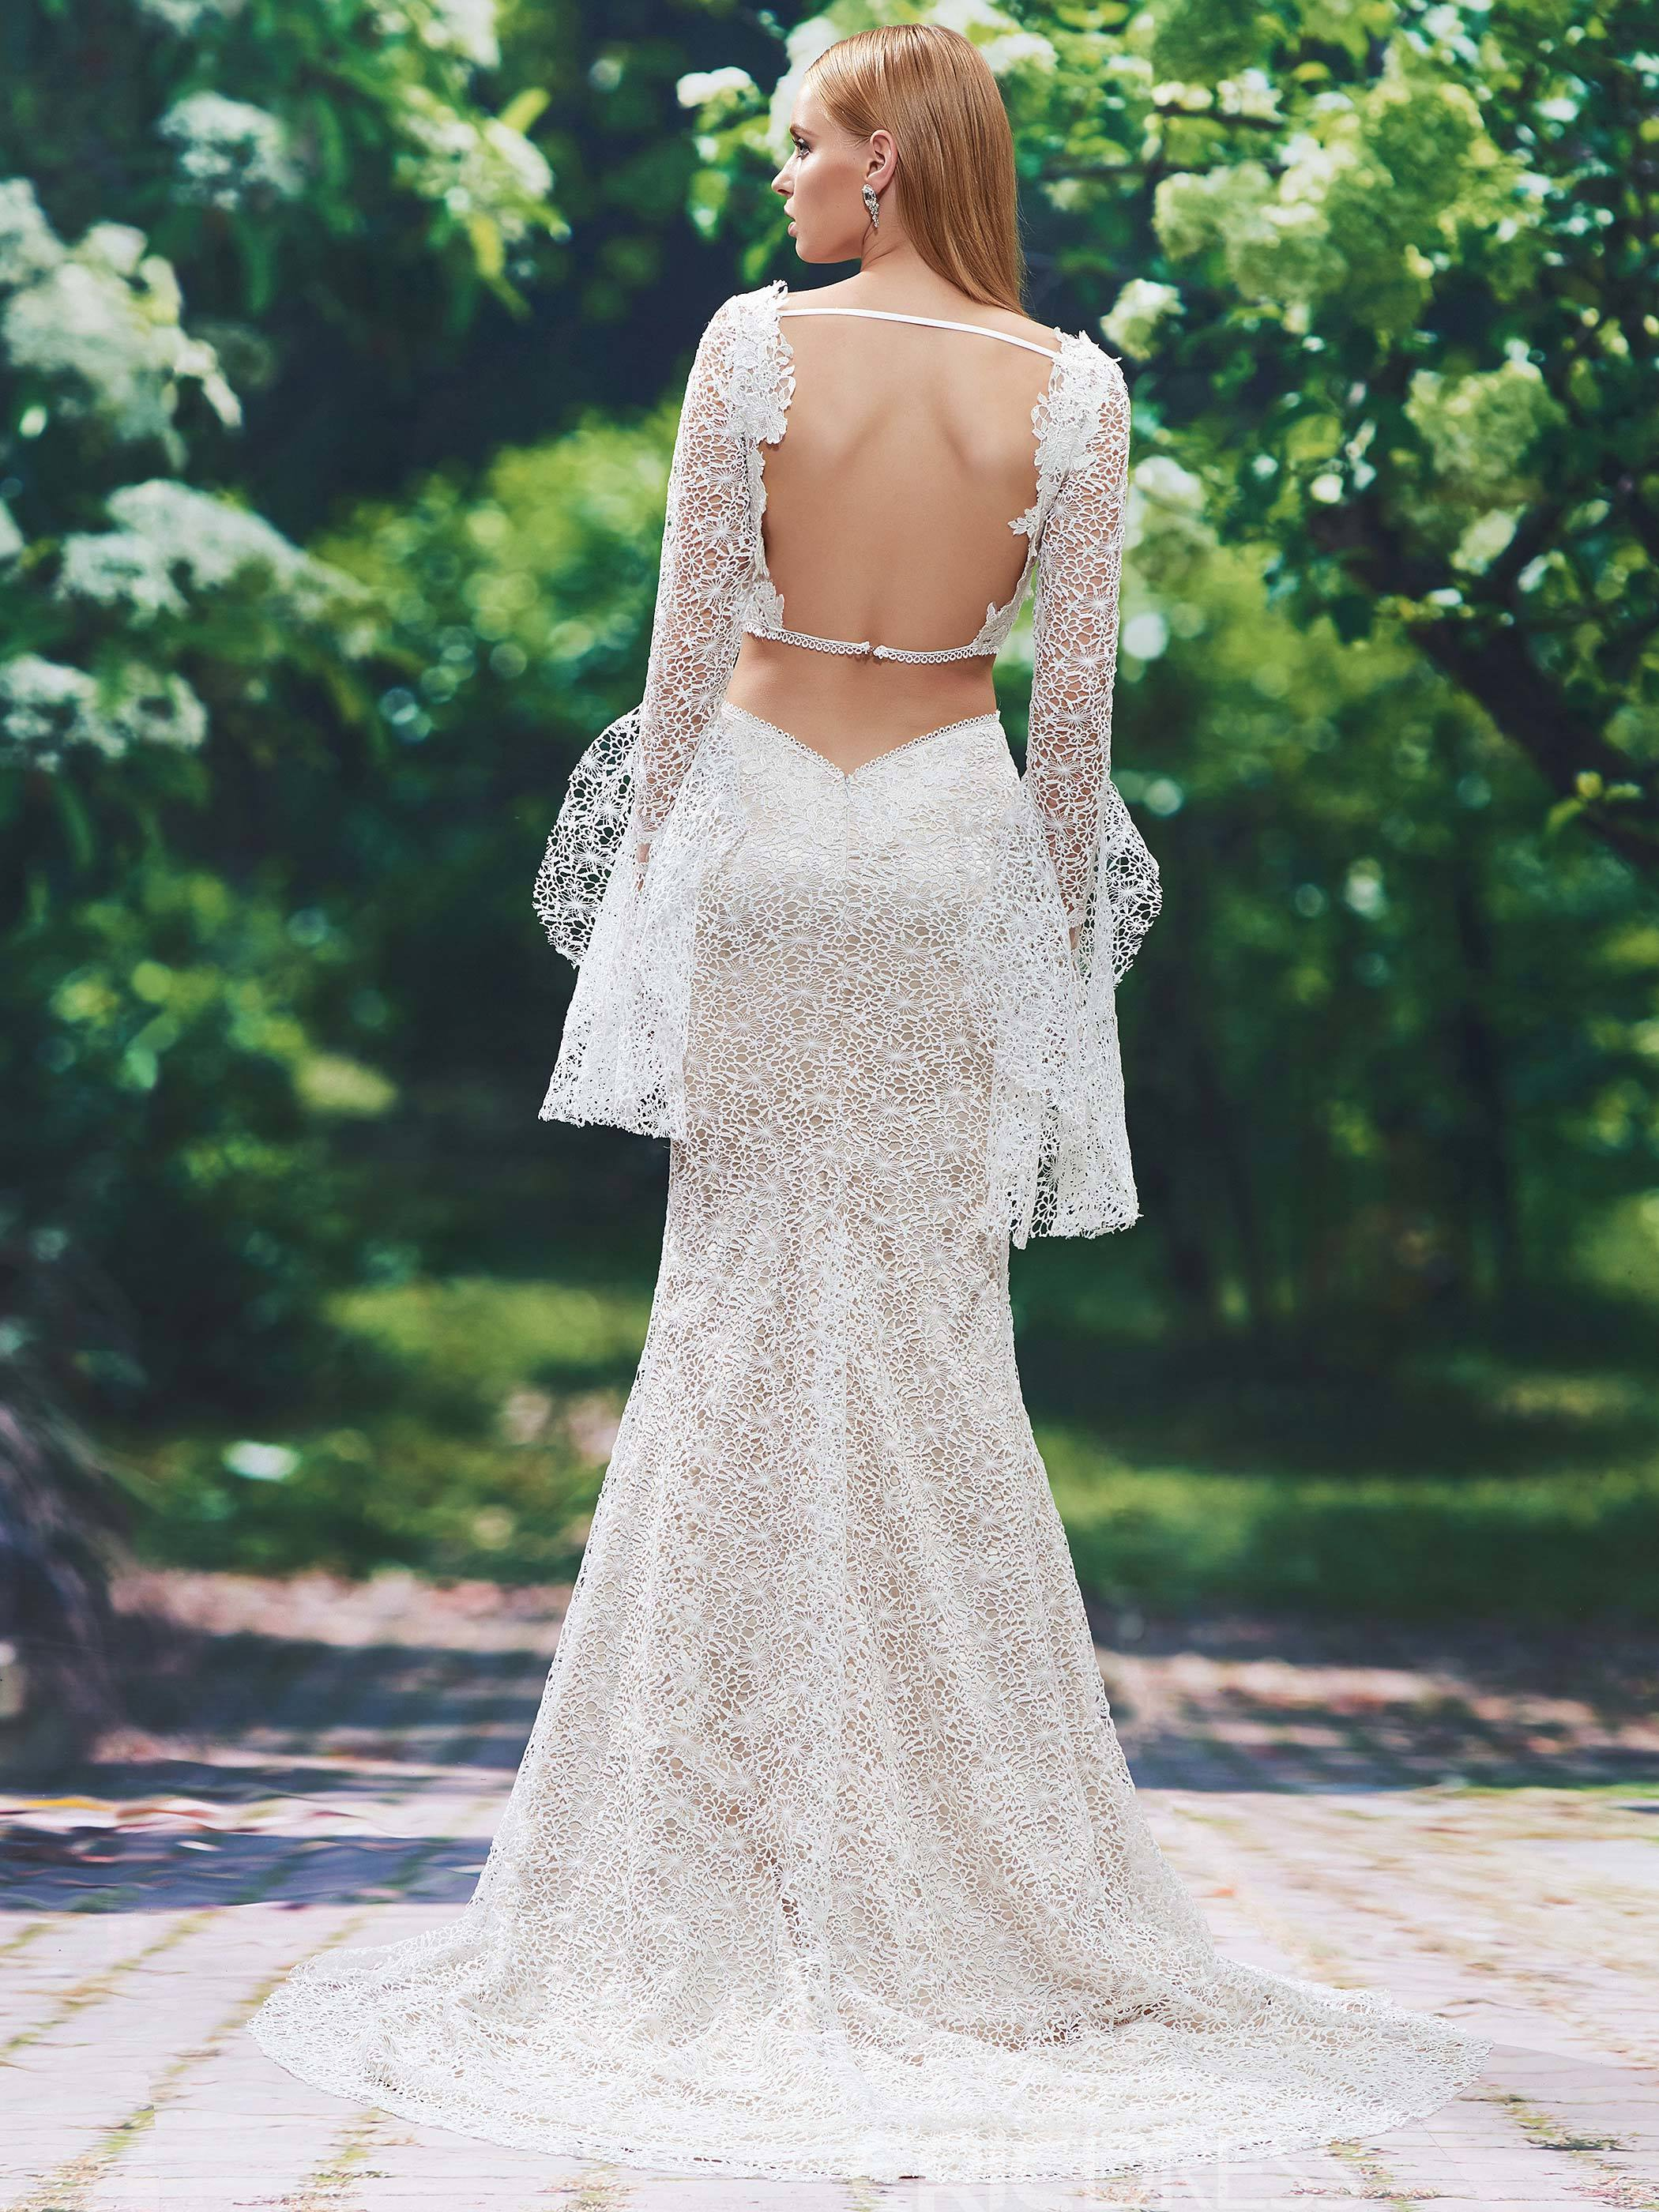 Ericdress Charming Two Pieces Lace Mermaid Wedding Dress With Sleeves